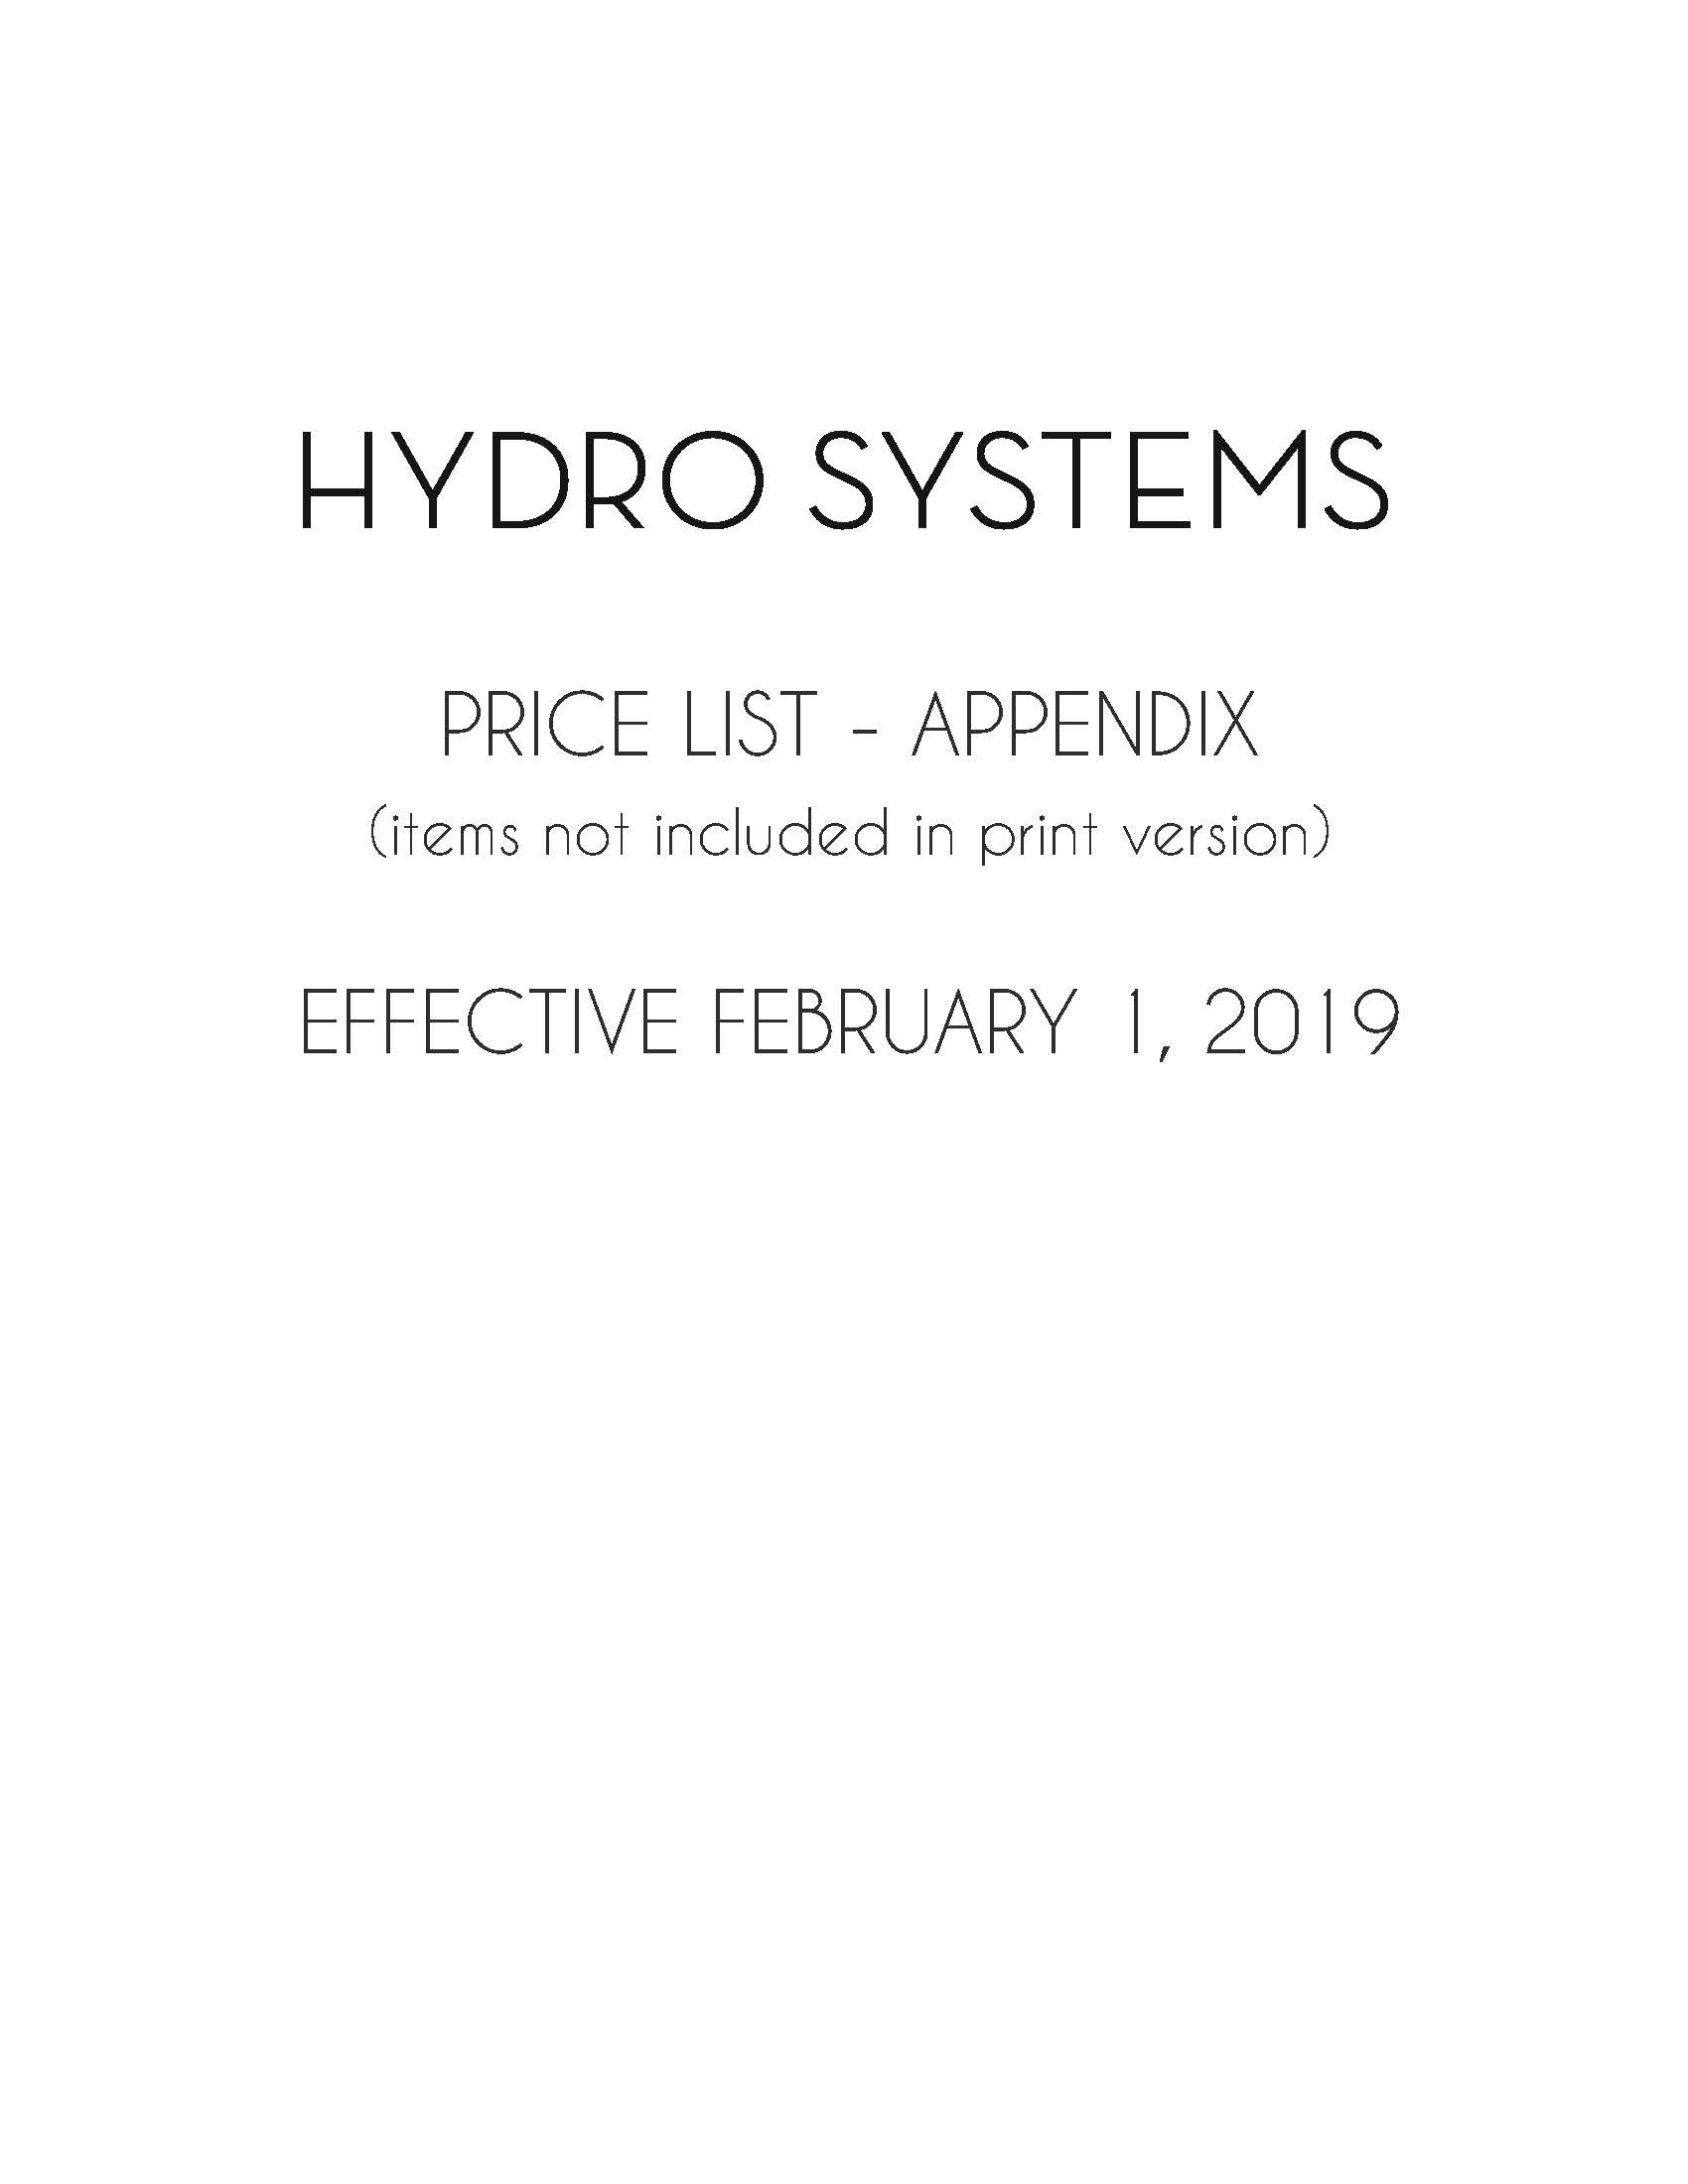 hydro systems price list appendix effective february 1 2019